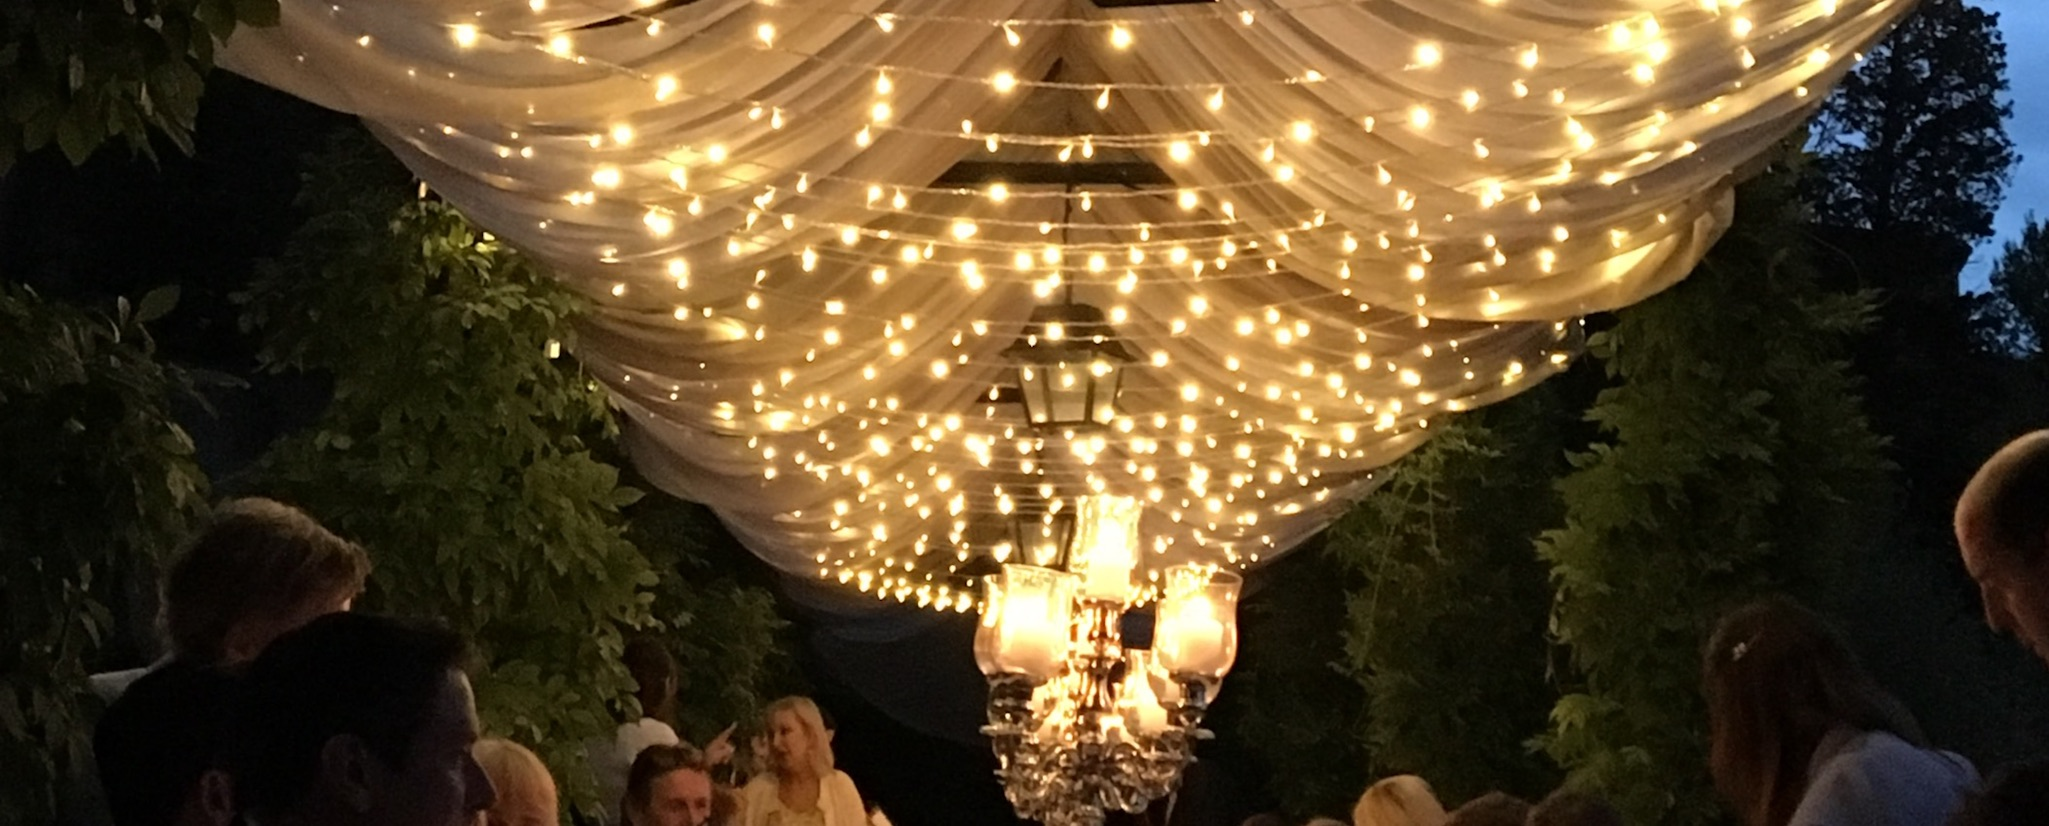 Light enhancement with Fairylights for a destination wedding in Tuscany